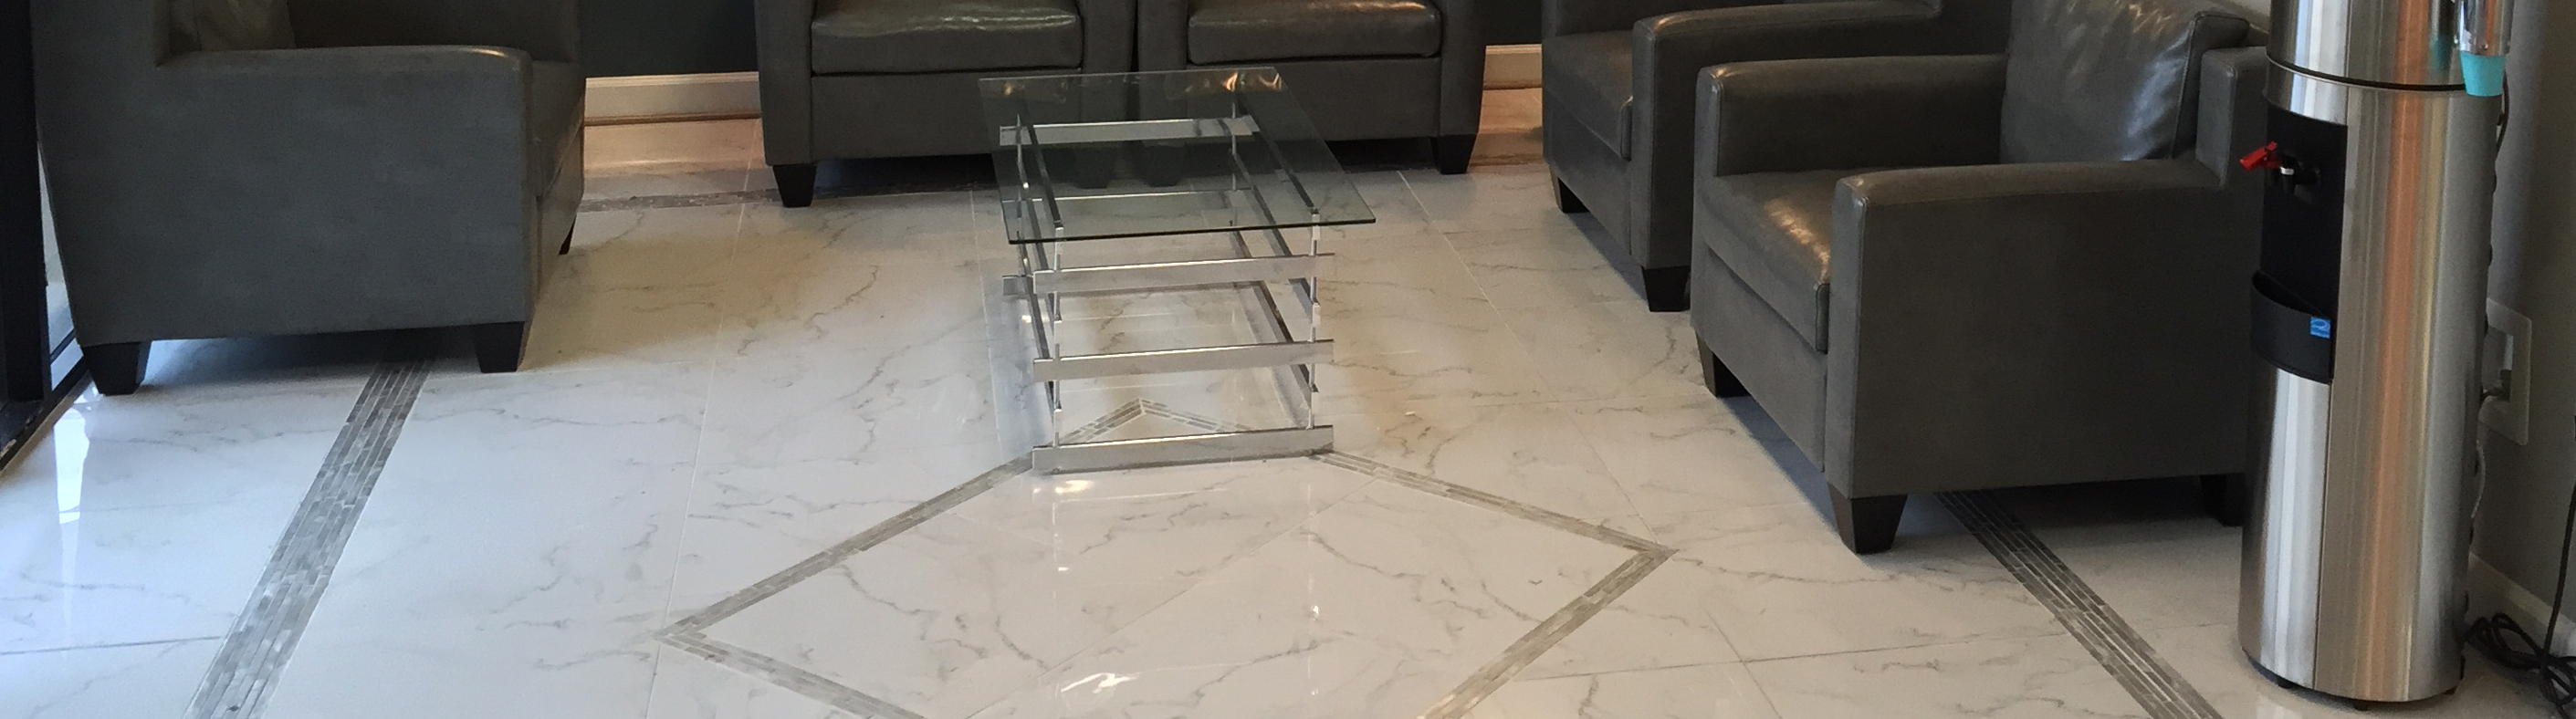 Marble Floor Cleaning Tile Stone Clean Life Cleaning Services